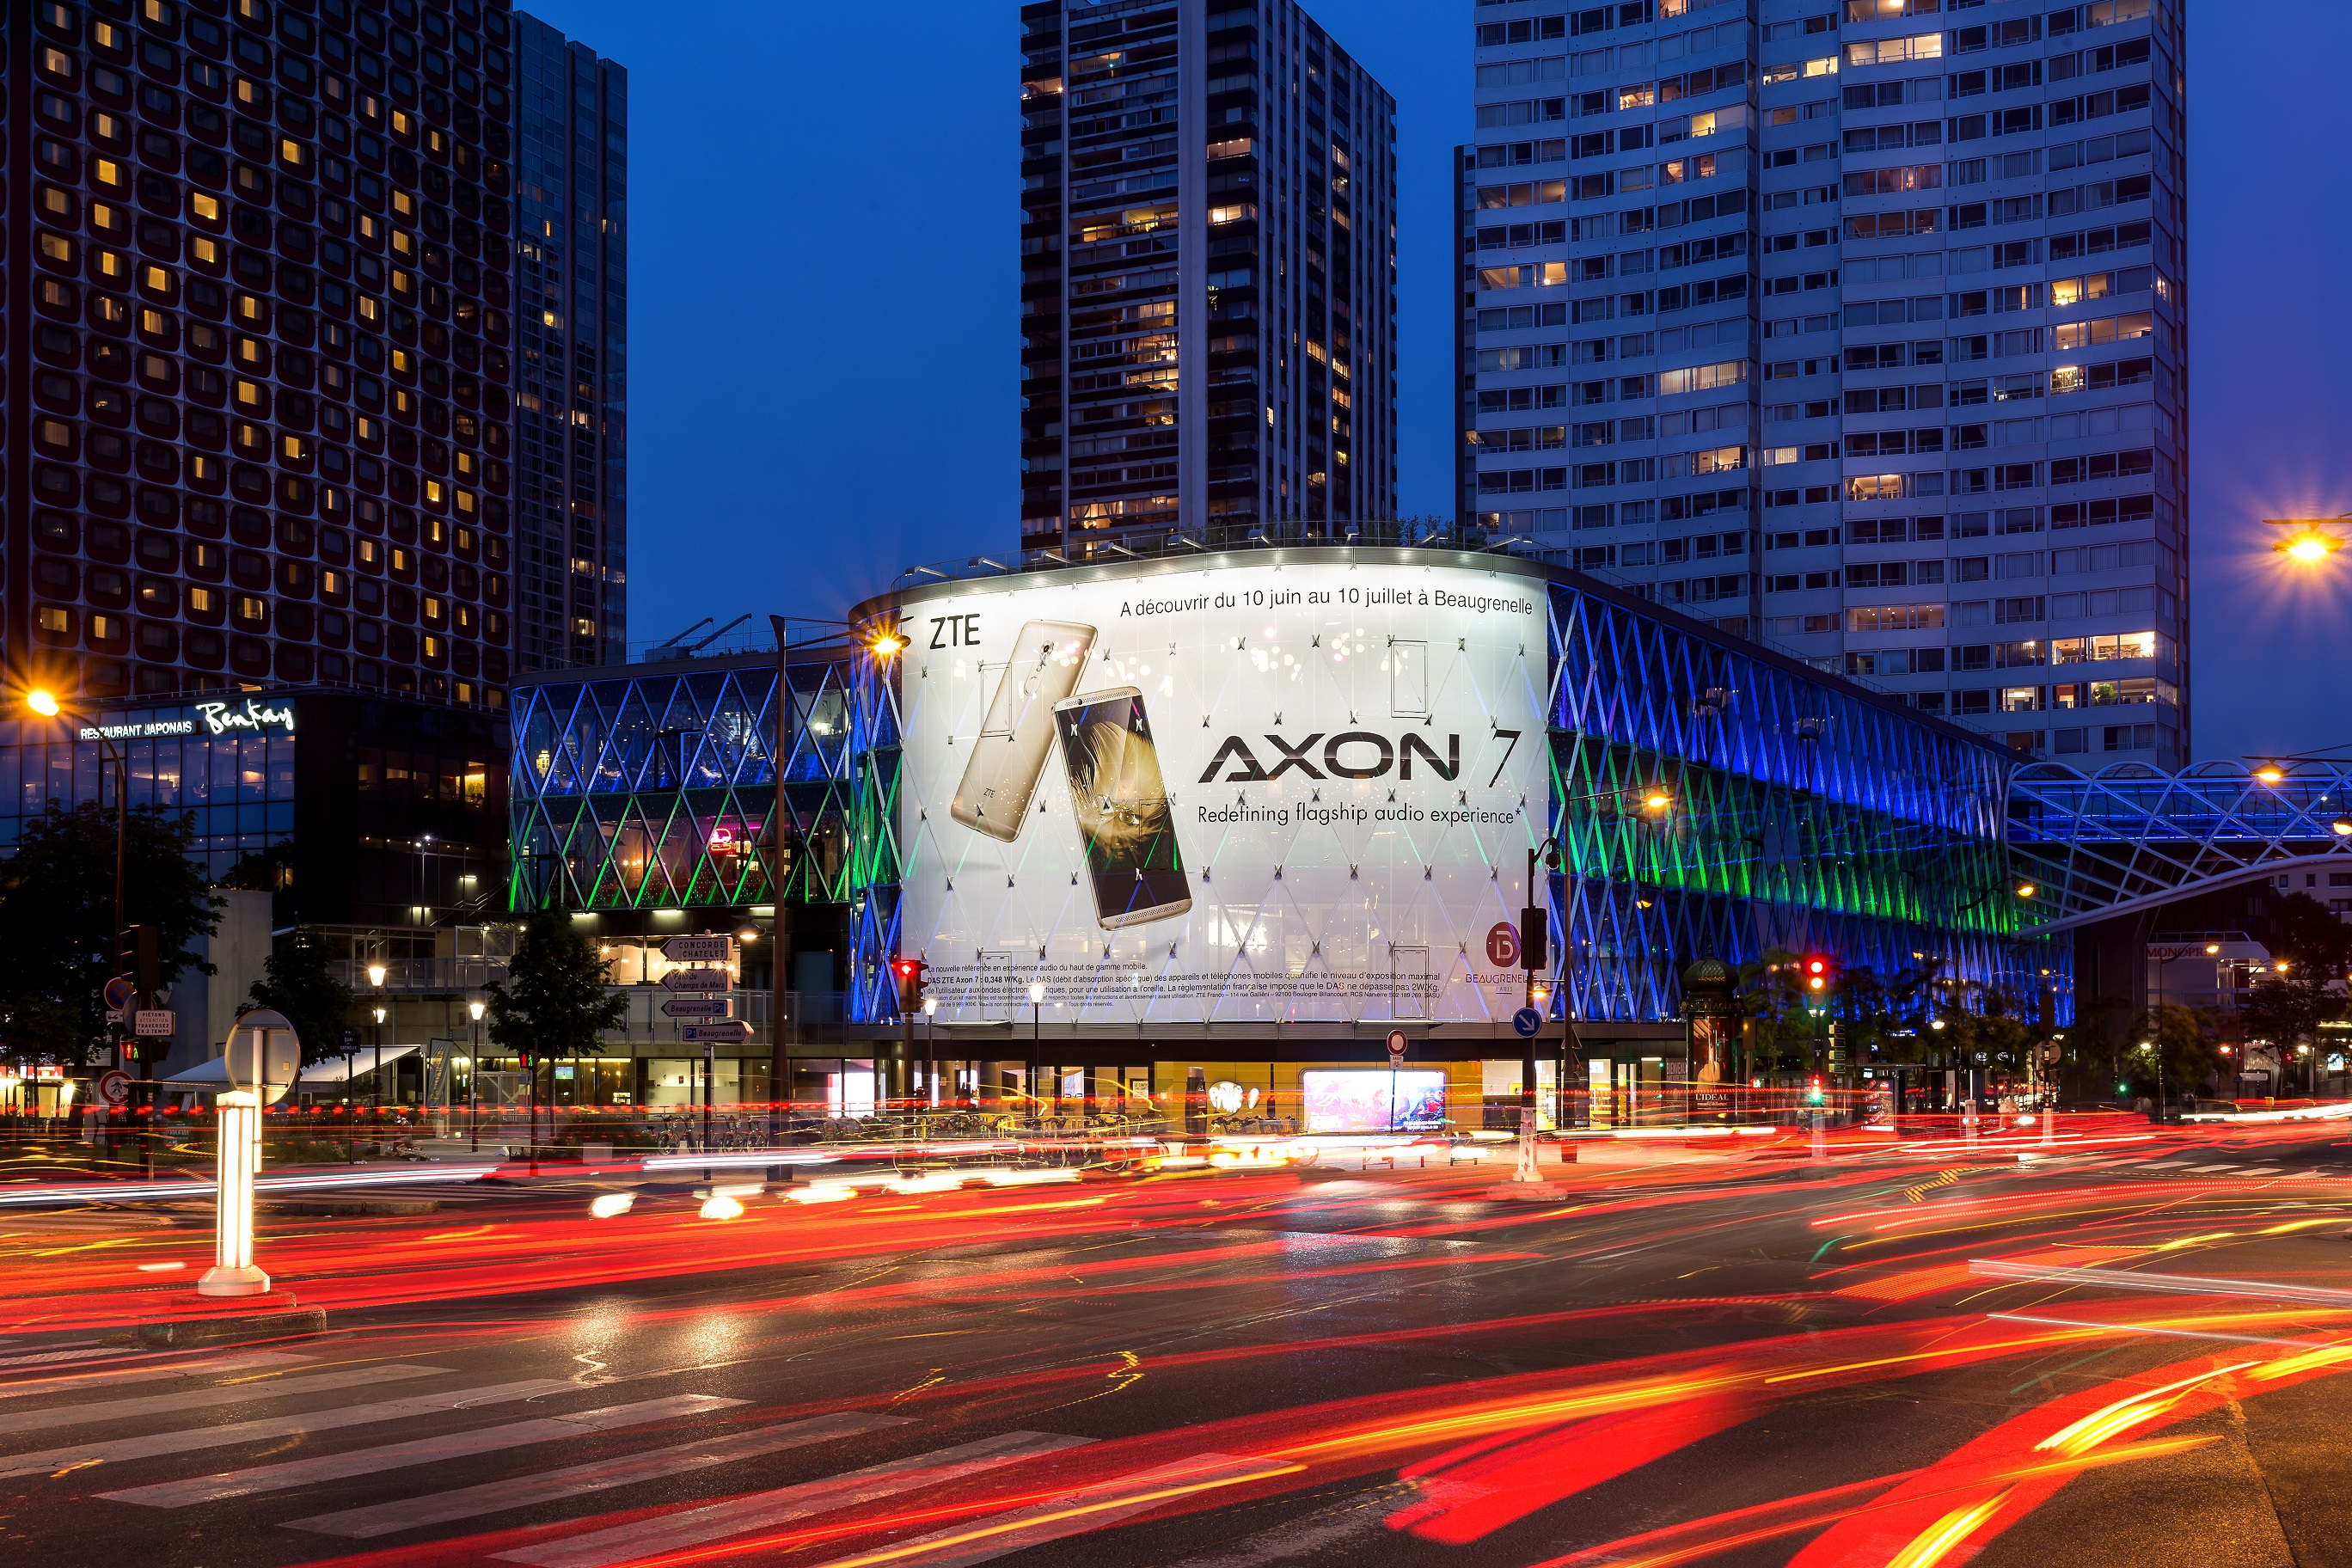 A ZTE AXON 7 advertisement adorns an ultra-modern building in Paris